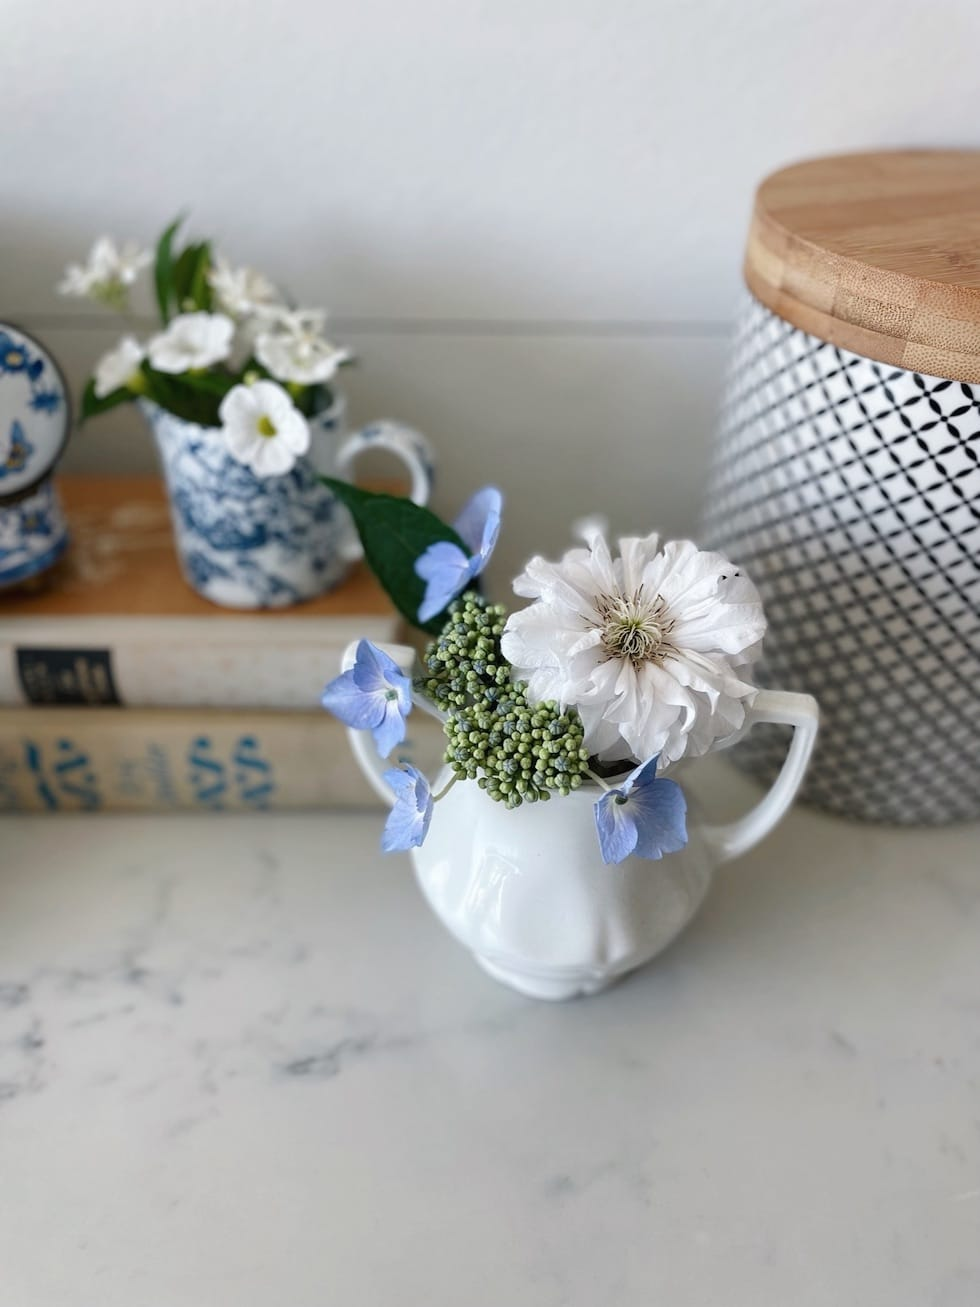 Small bouquets in reused small vases